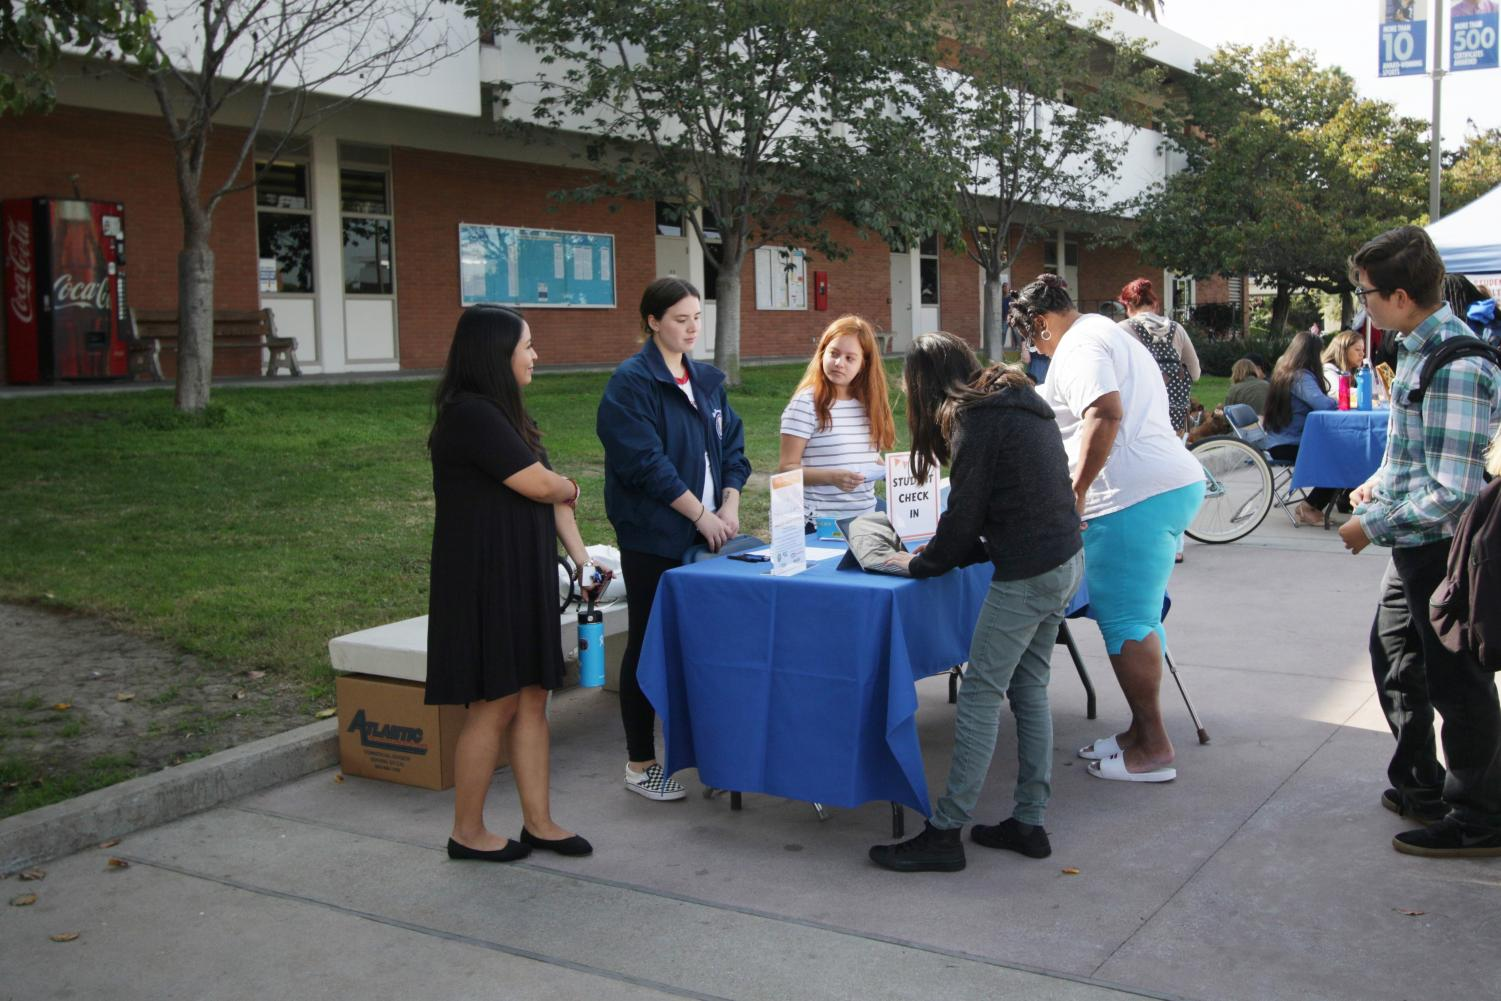 Students line up and sign in to the Harvest Festival near the Student Services Building on Tuesday, Nov.19. They received a paper to fill up with stickers available at the booths they visited during the event. Viridiana Flores/The Union